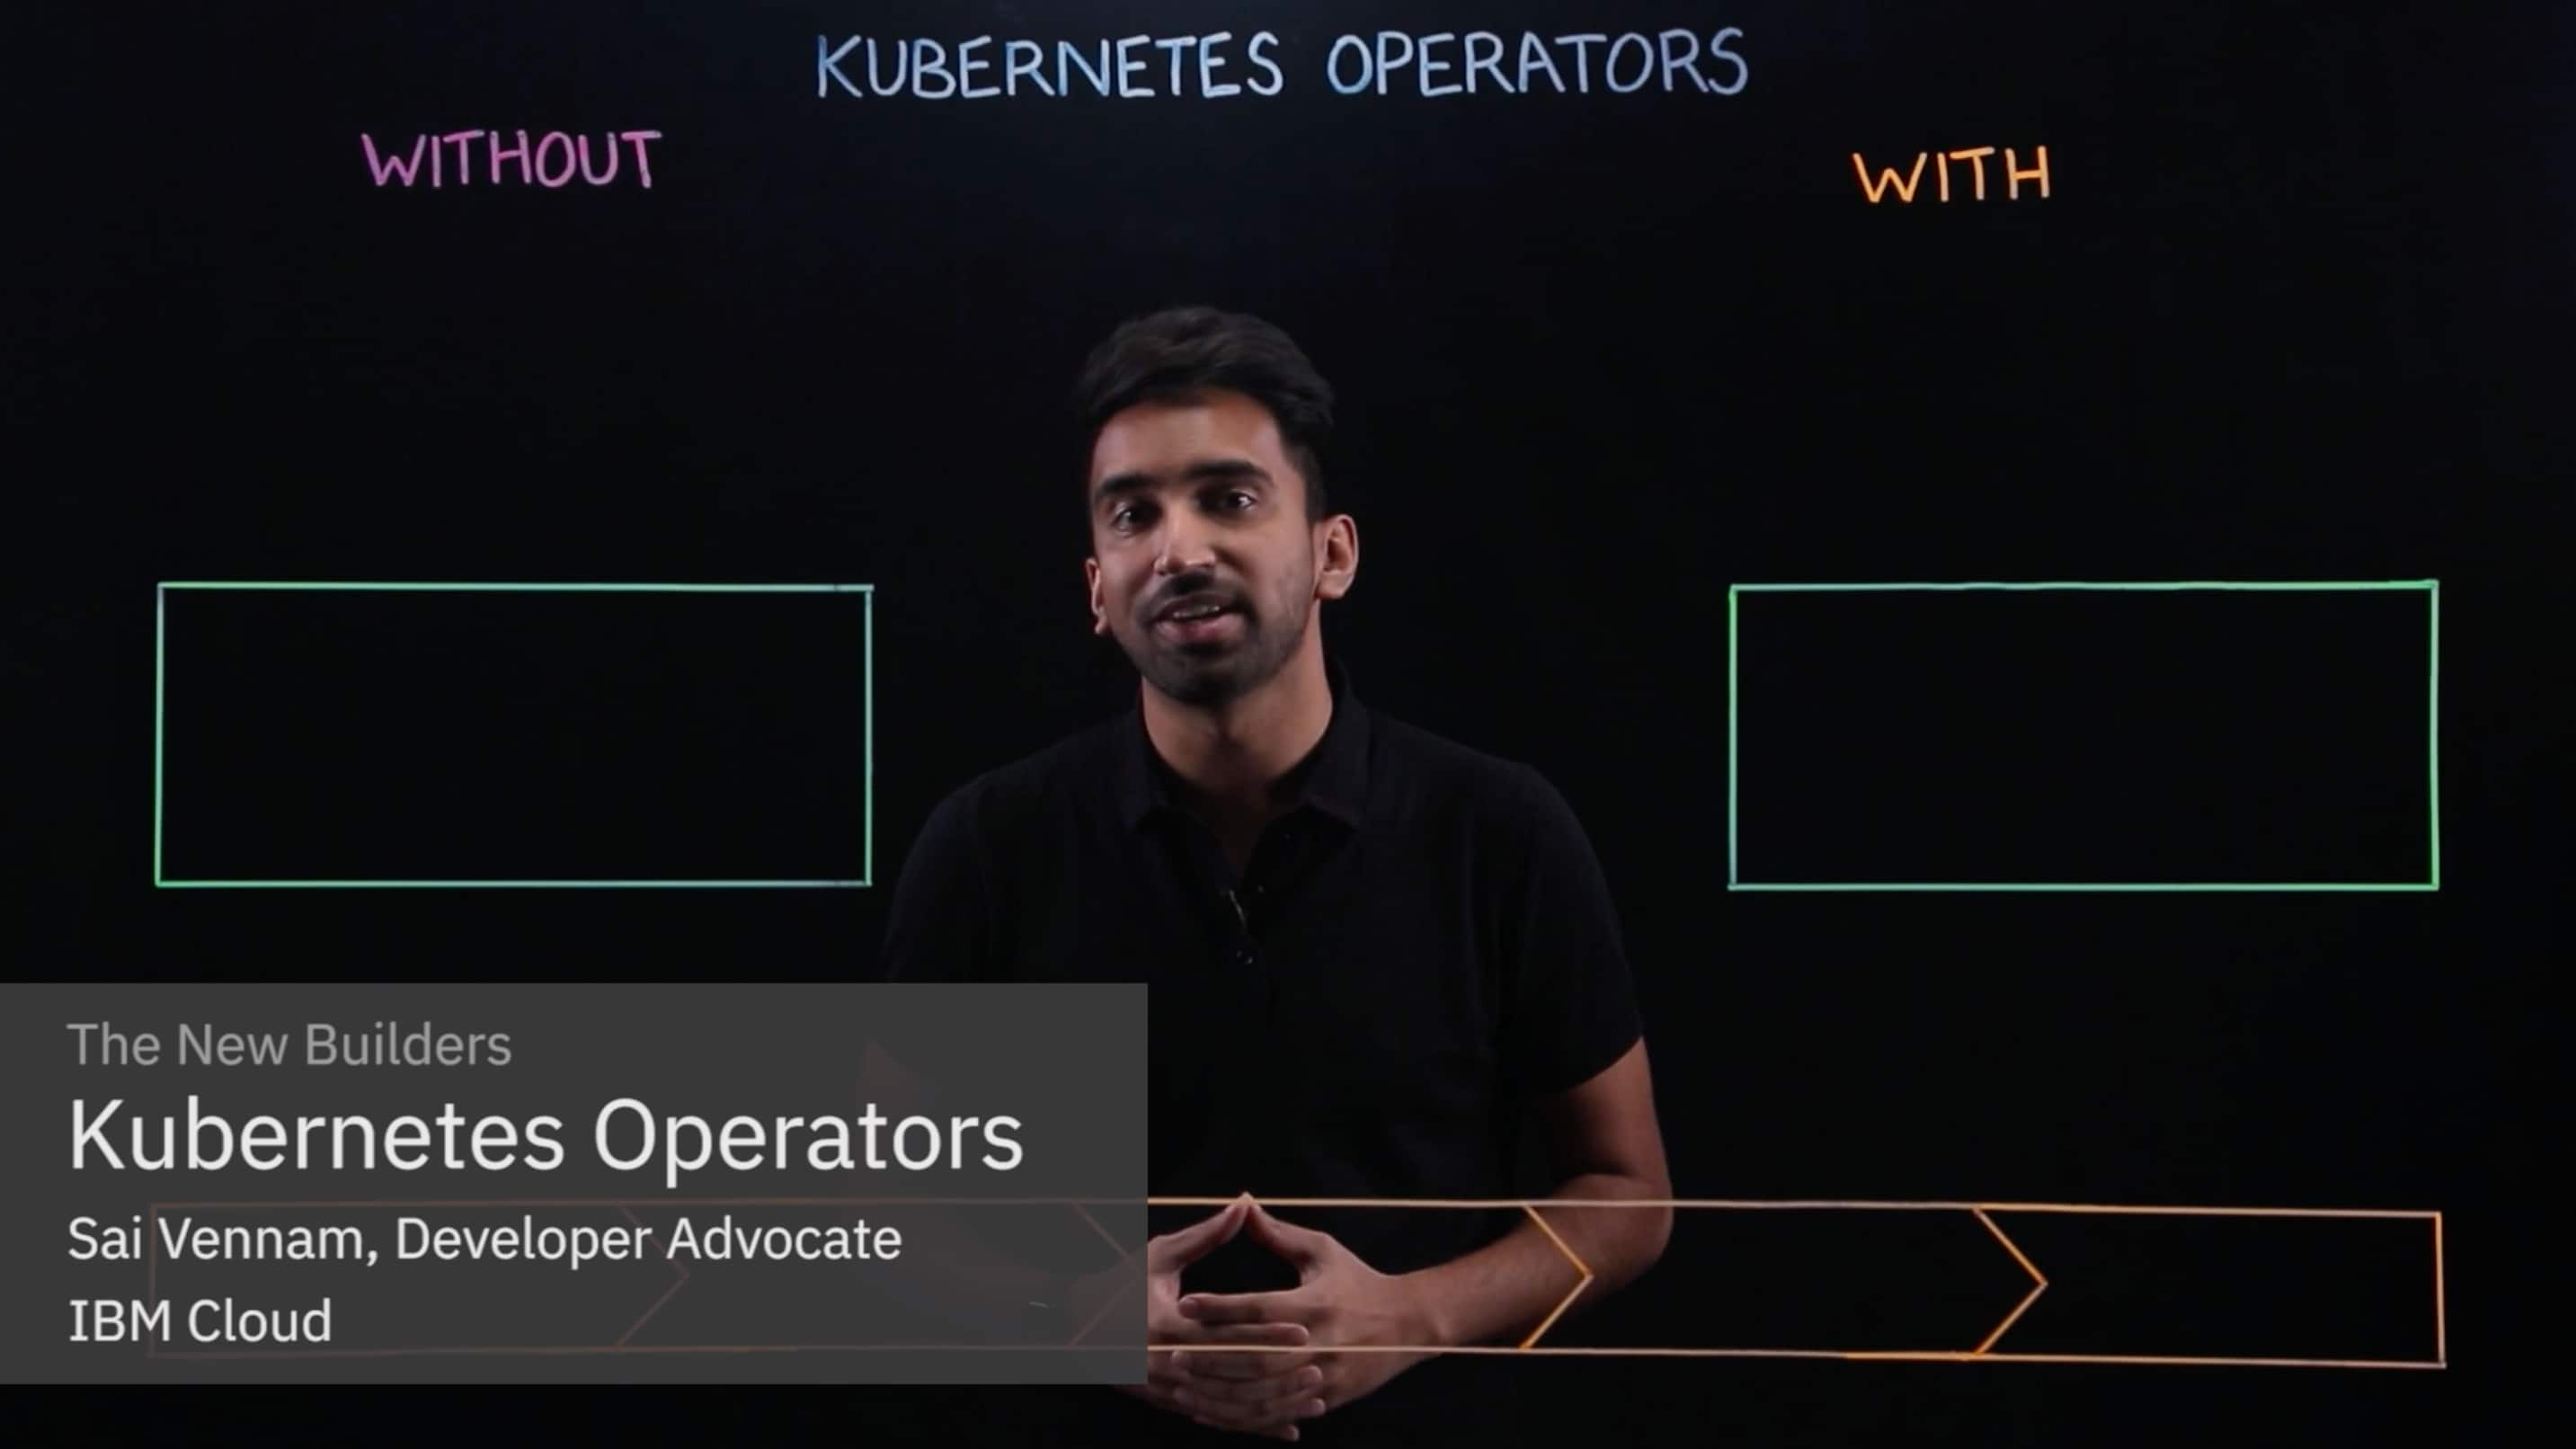 What are Kubernetes Operators?